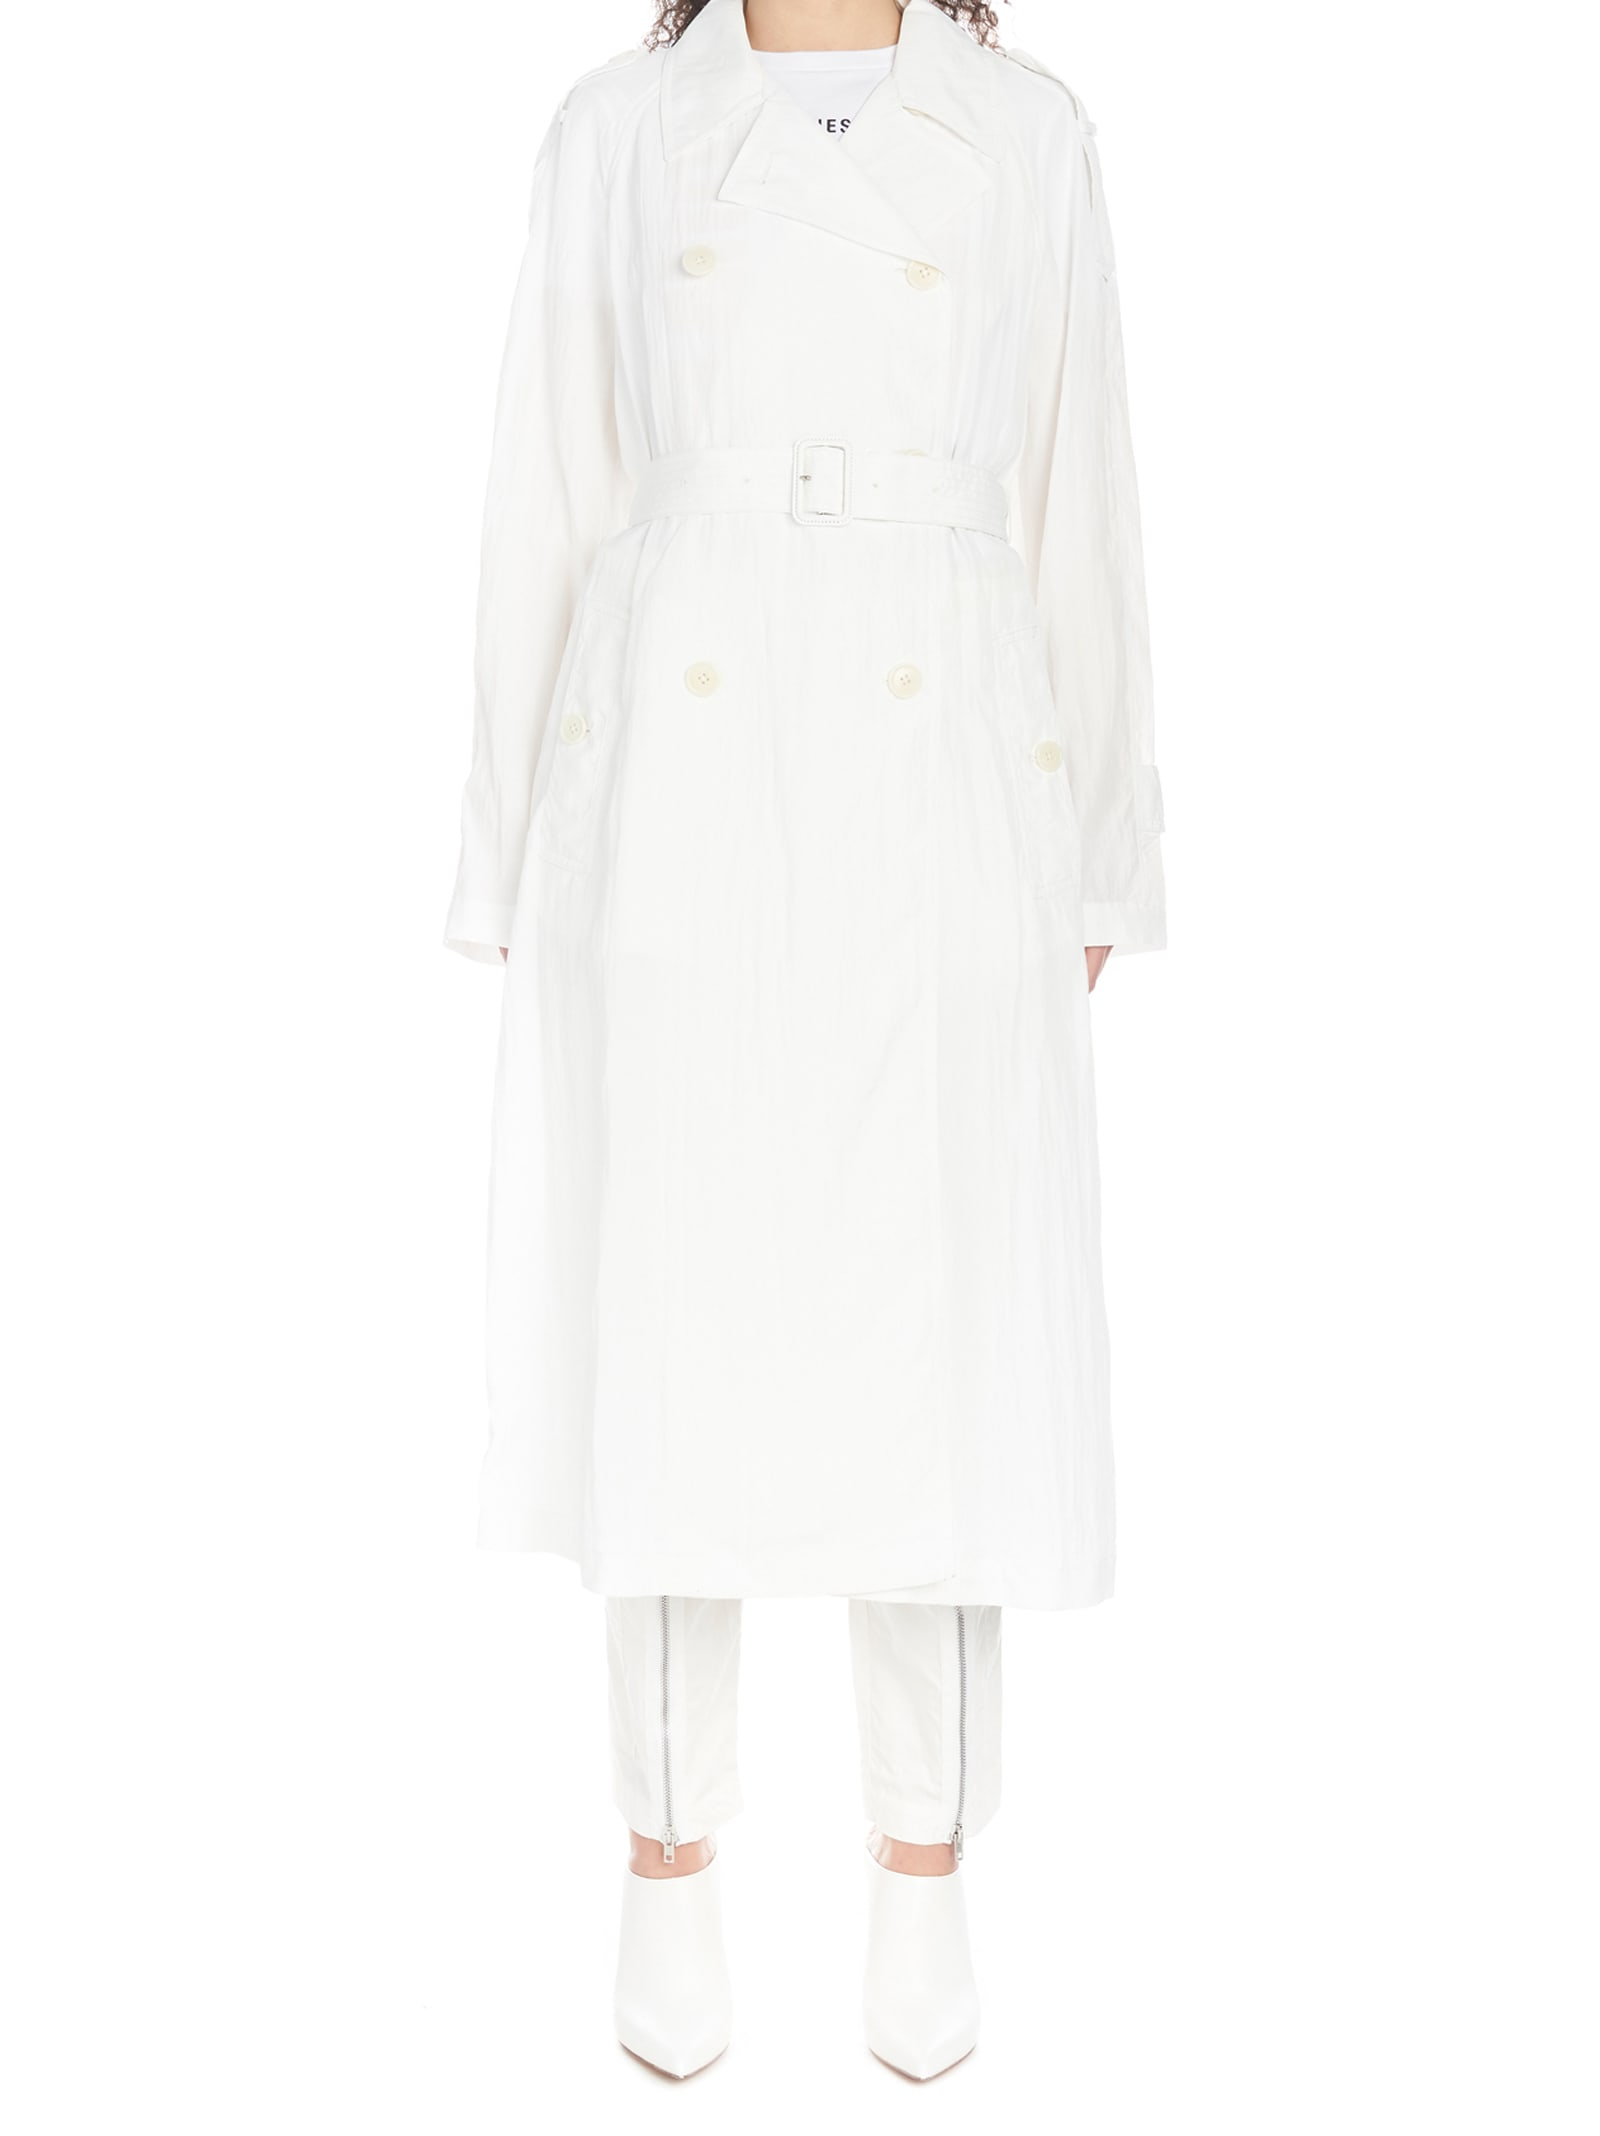 Helmut Lang parachute Trench